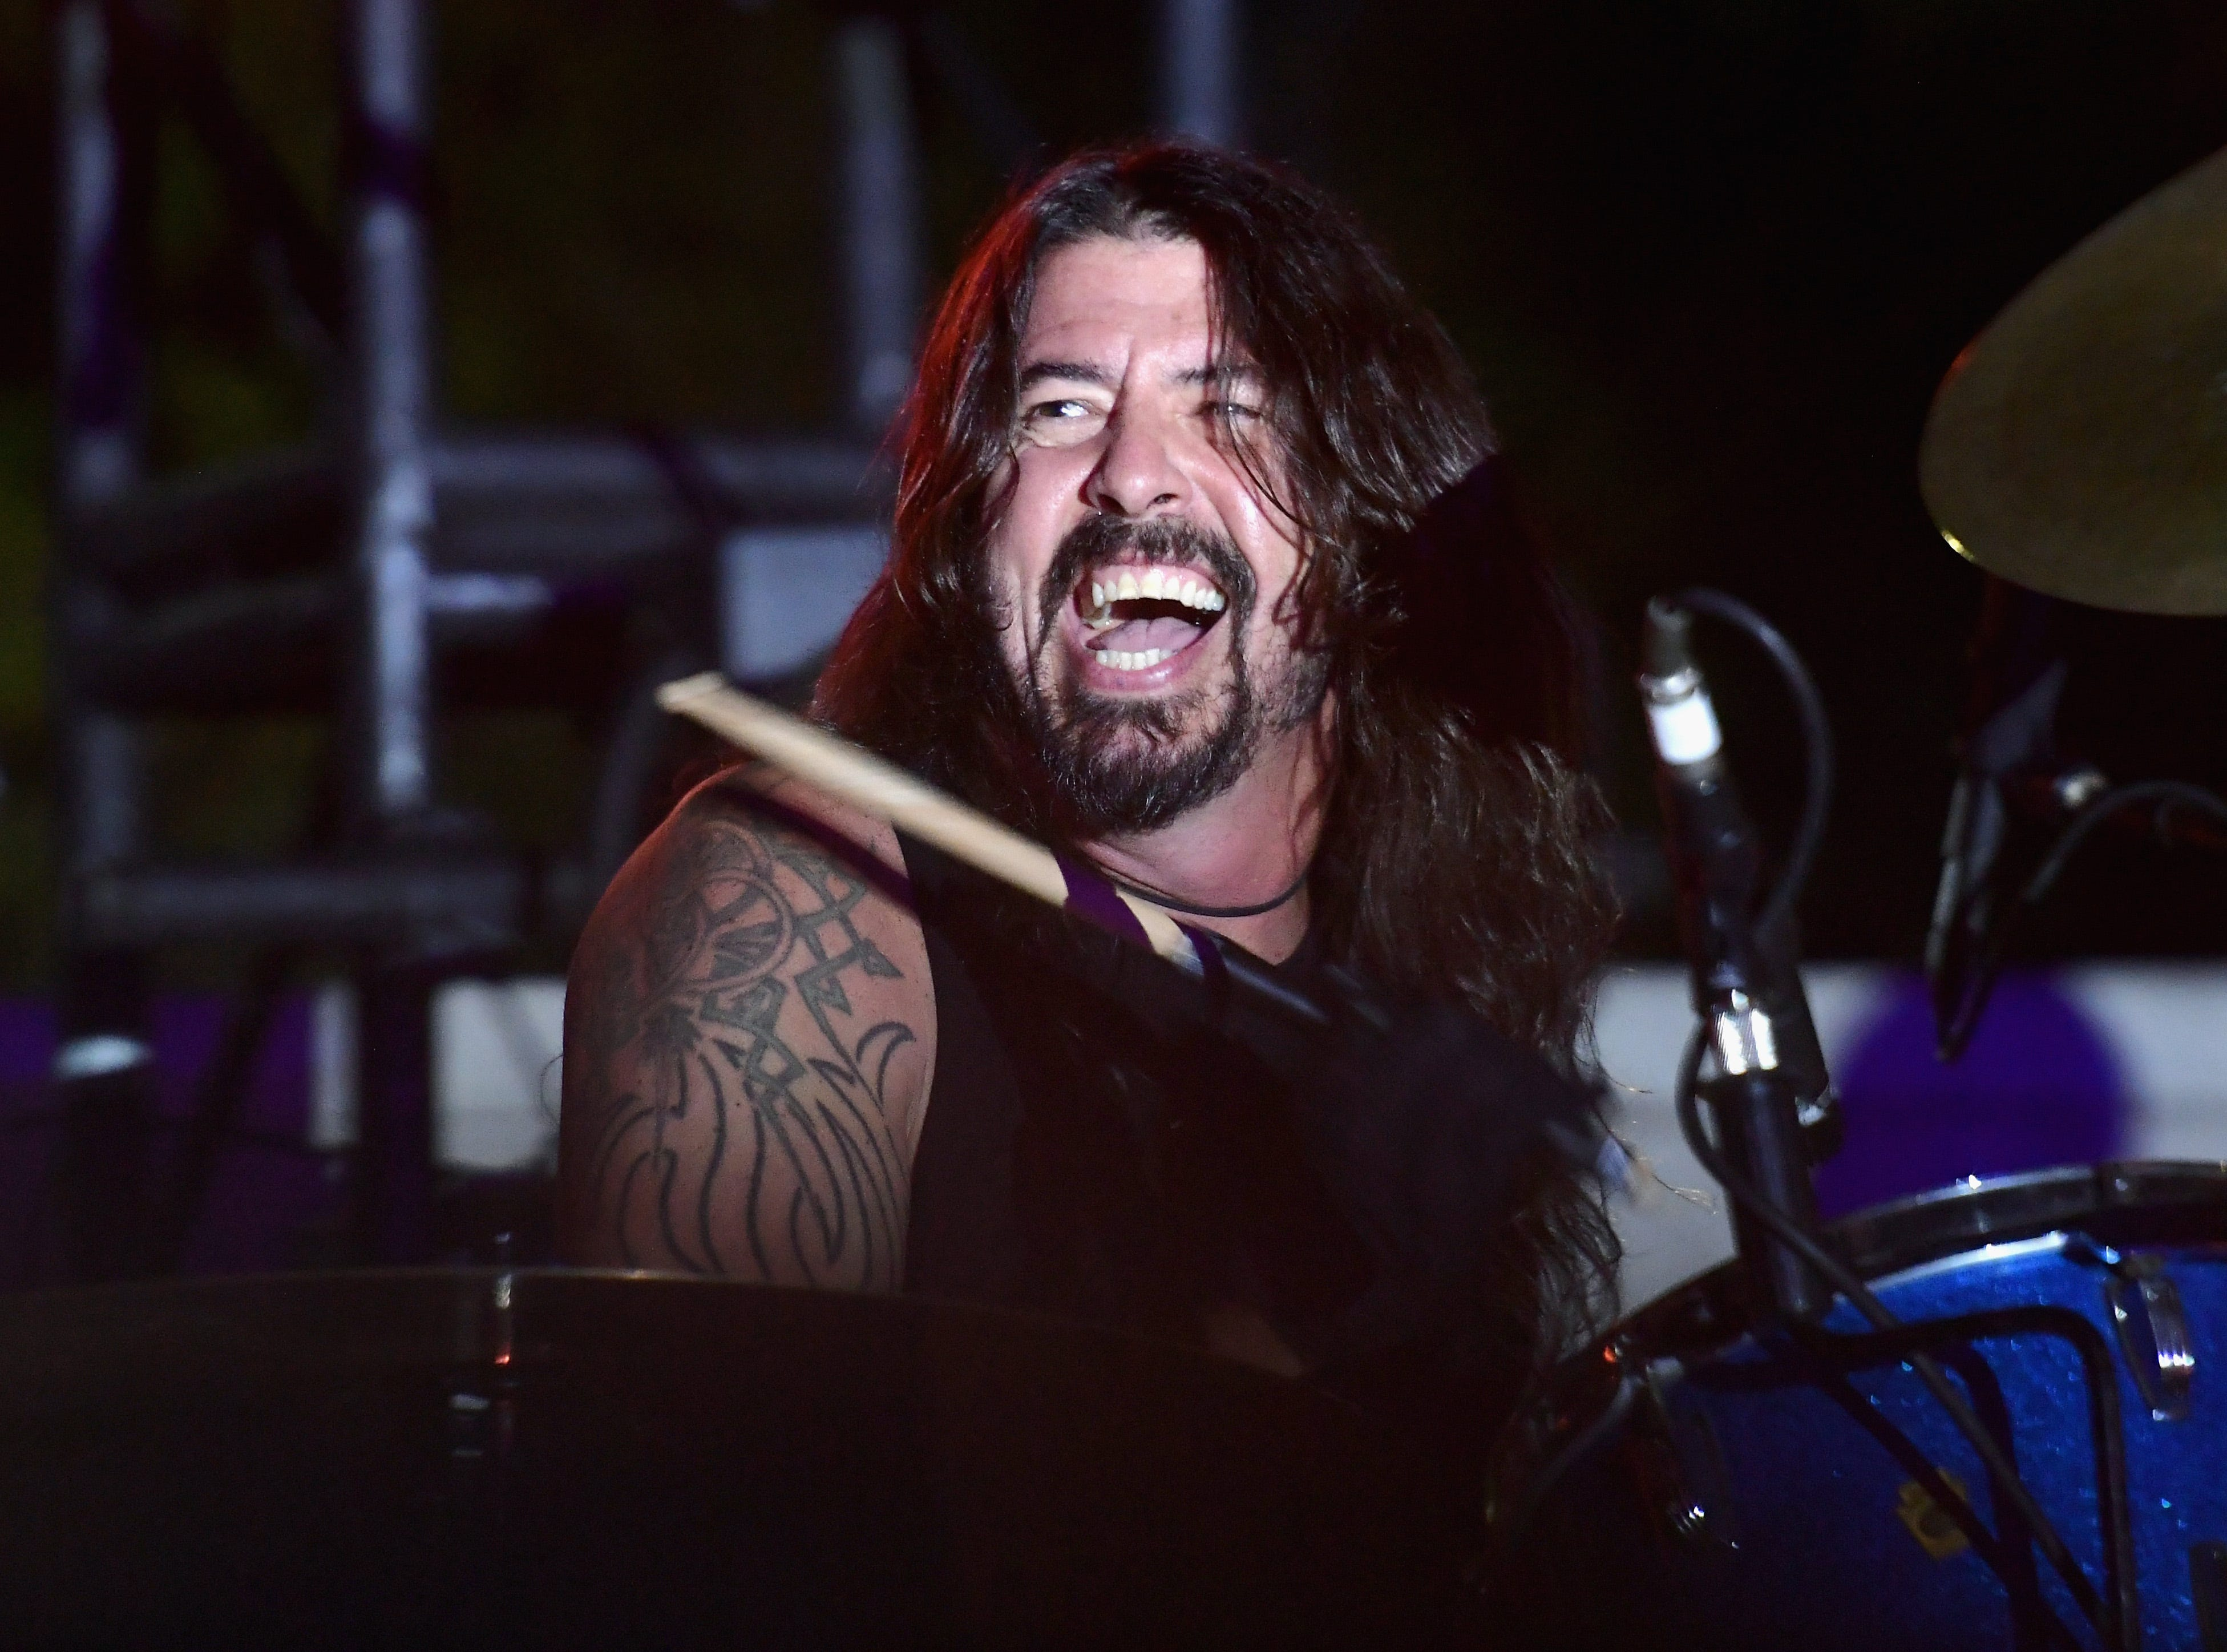 Dave Grohl turns 50 on Jan. 14.